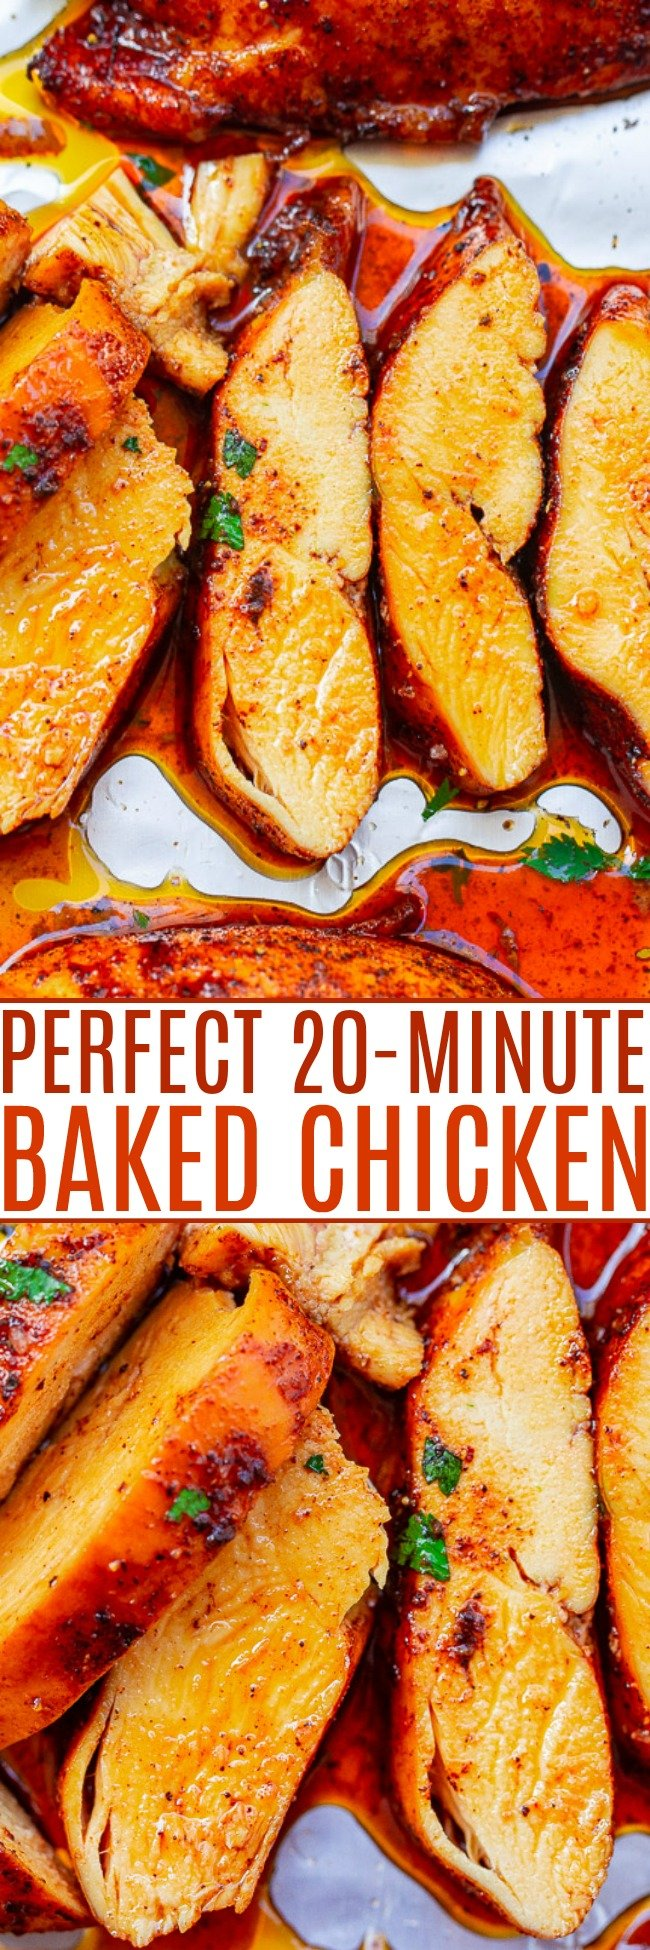 Perfect 20-Minute Oven-Baked Chicken Breasts - Super juicy, flavorful, EASY, and tender chicken that's ready in 20 minutes and made on ONE sheet pan!! Nothing complicated or fussy about this PERFECT chicken that everyone LOVES!!